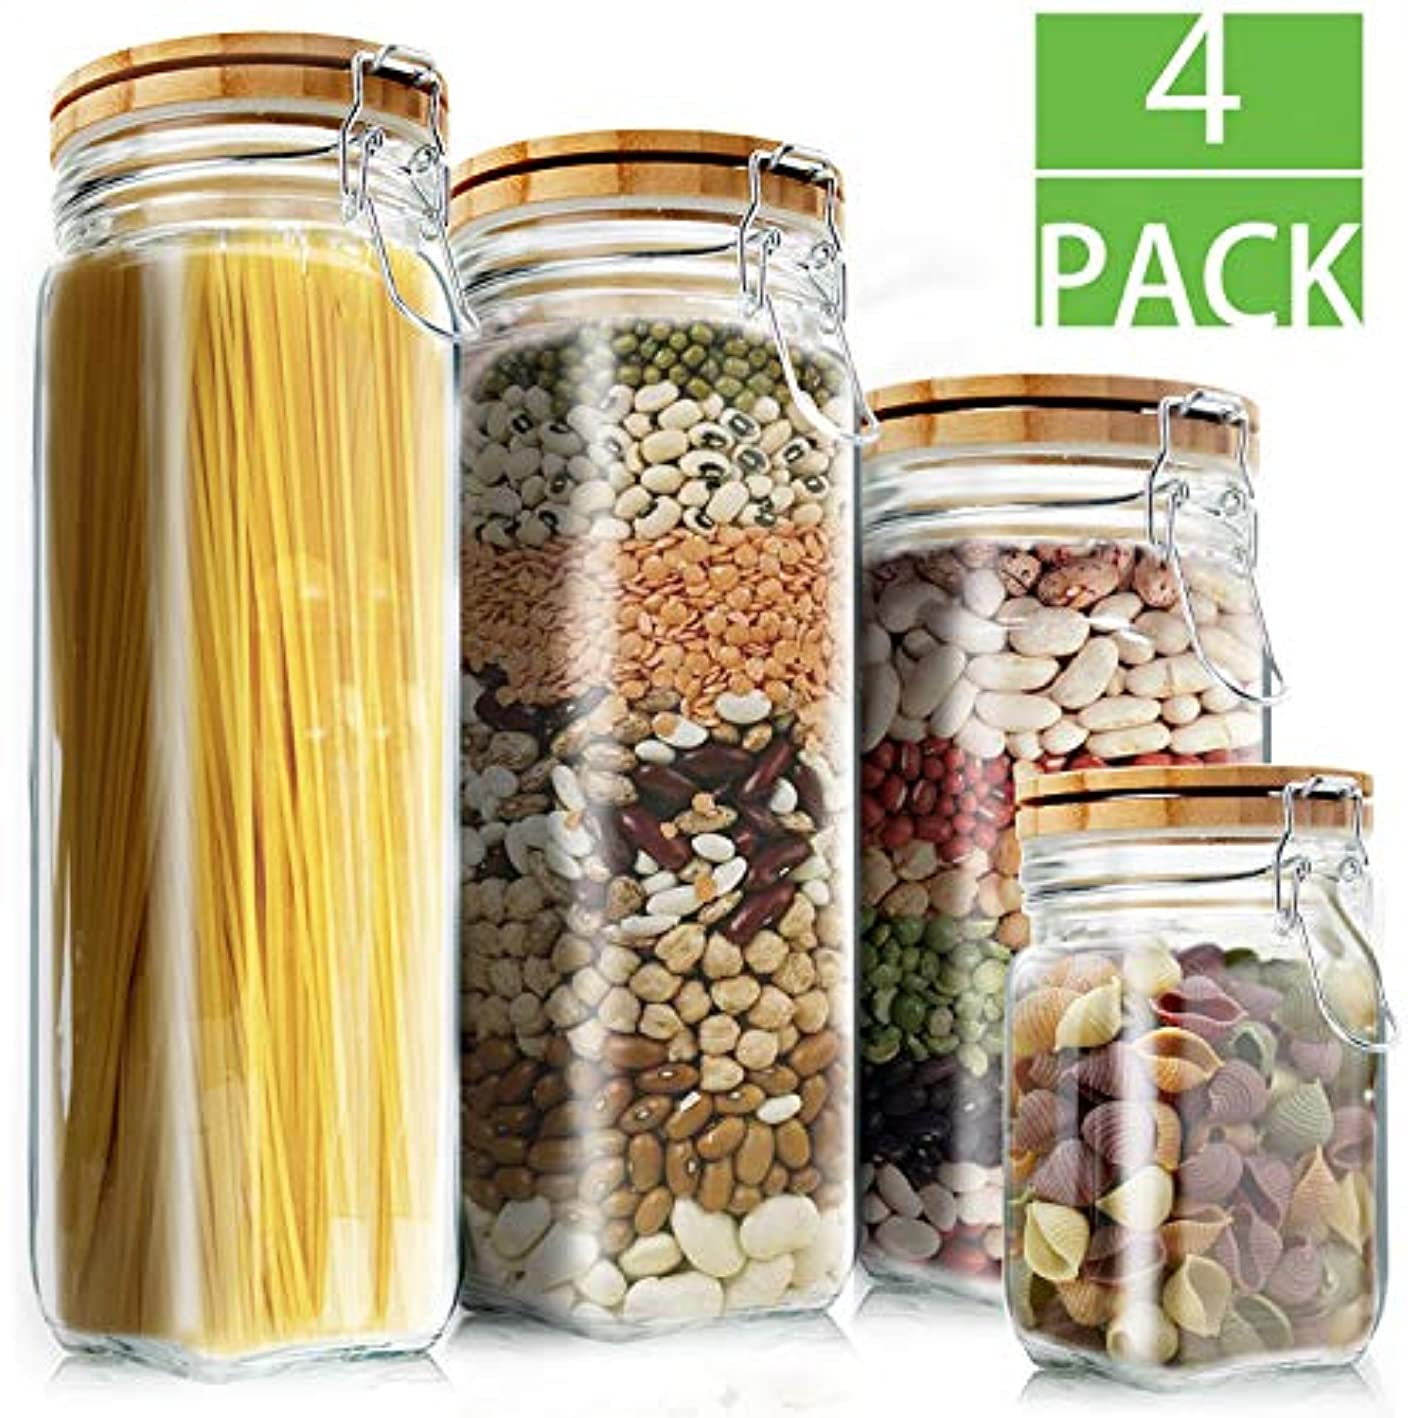 Food Storage Containers Set Kitchen Storage Jars Elegant Life Clear Glass Airtight Canister Set with Airtight Clamp Caps(4 Packs, 5.5L)